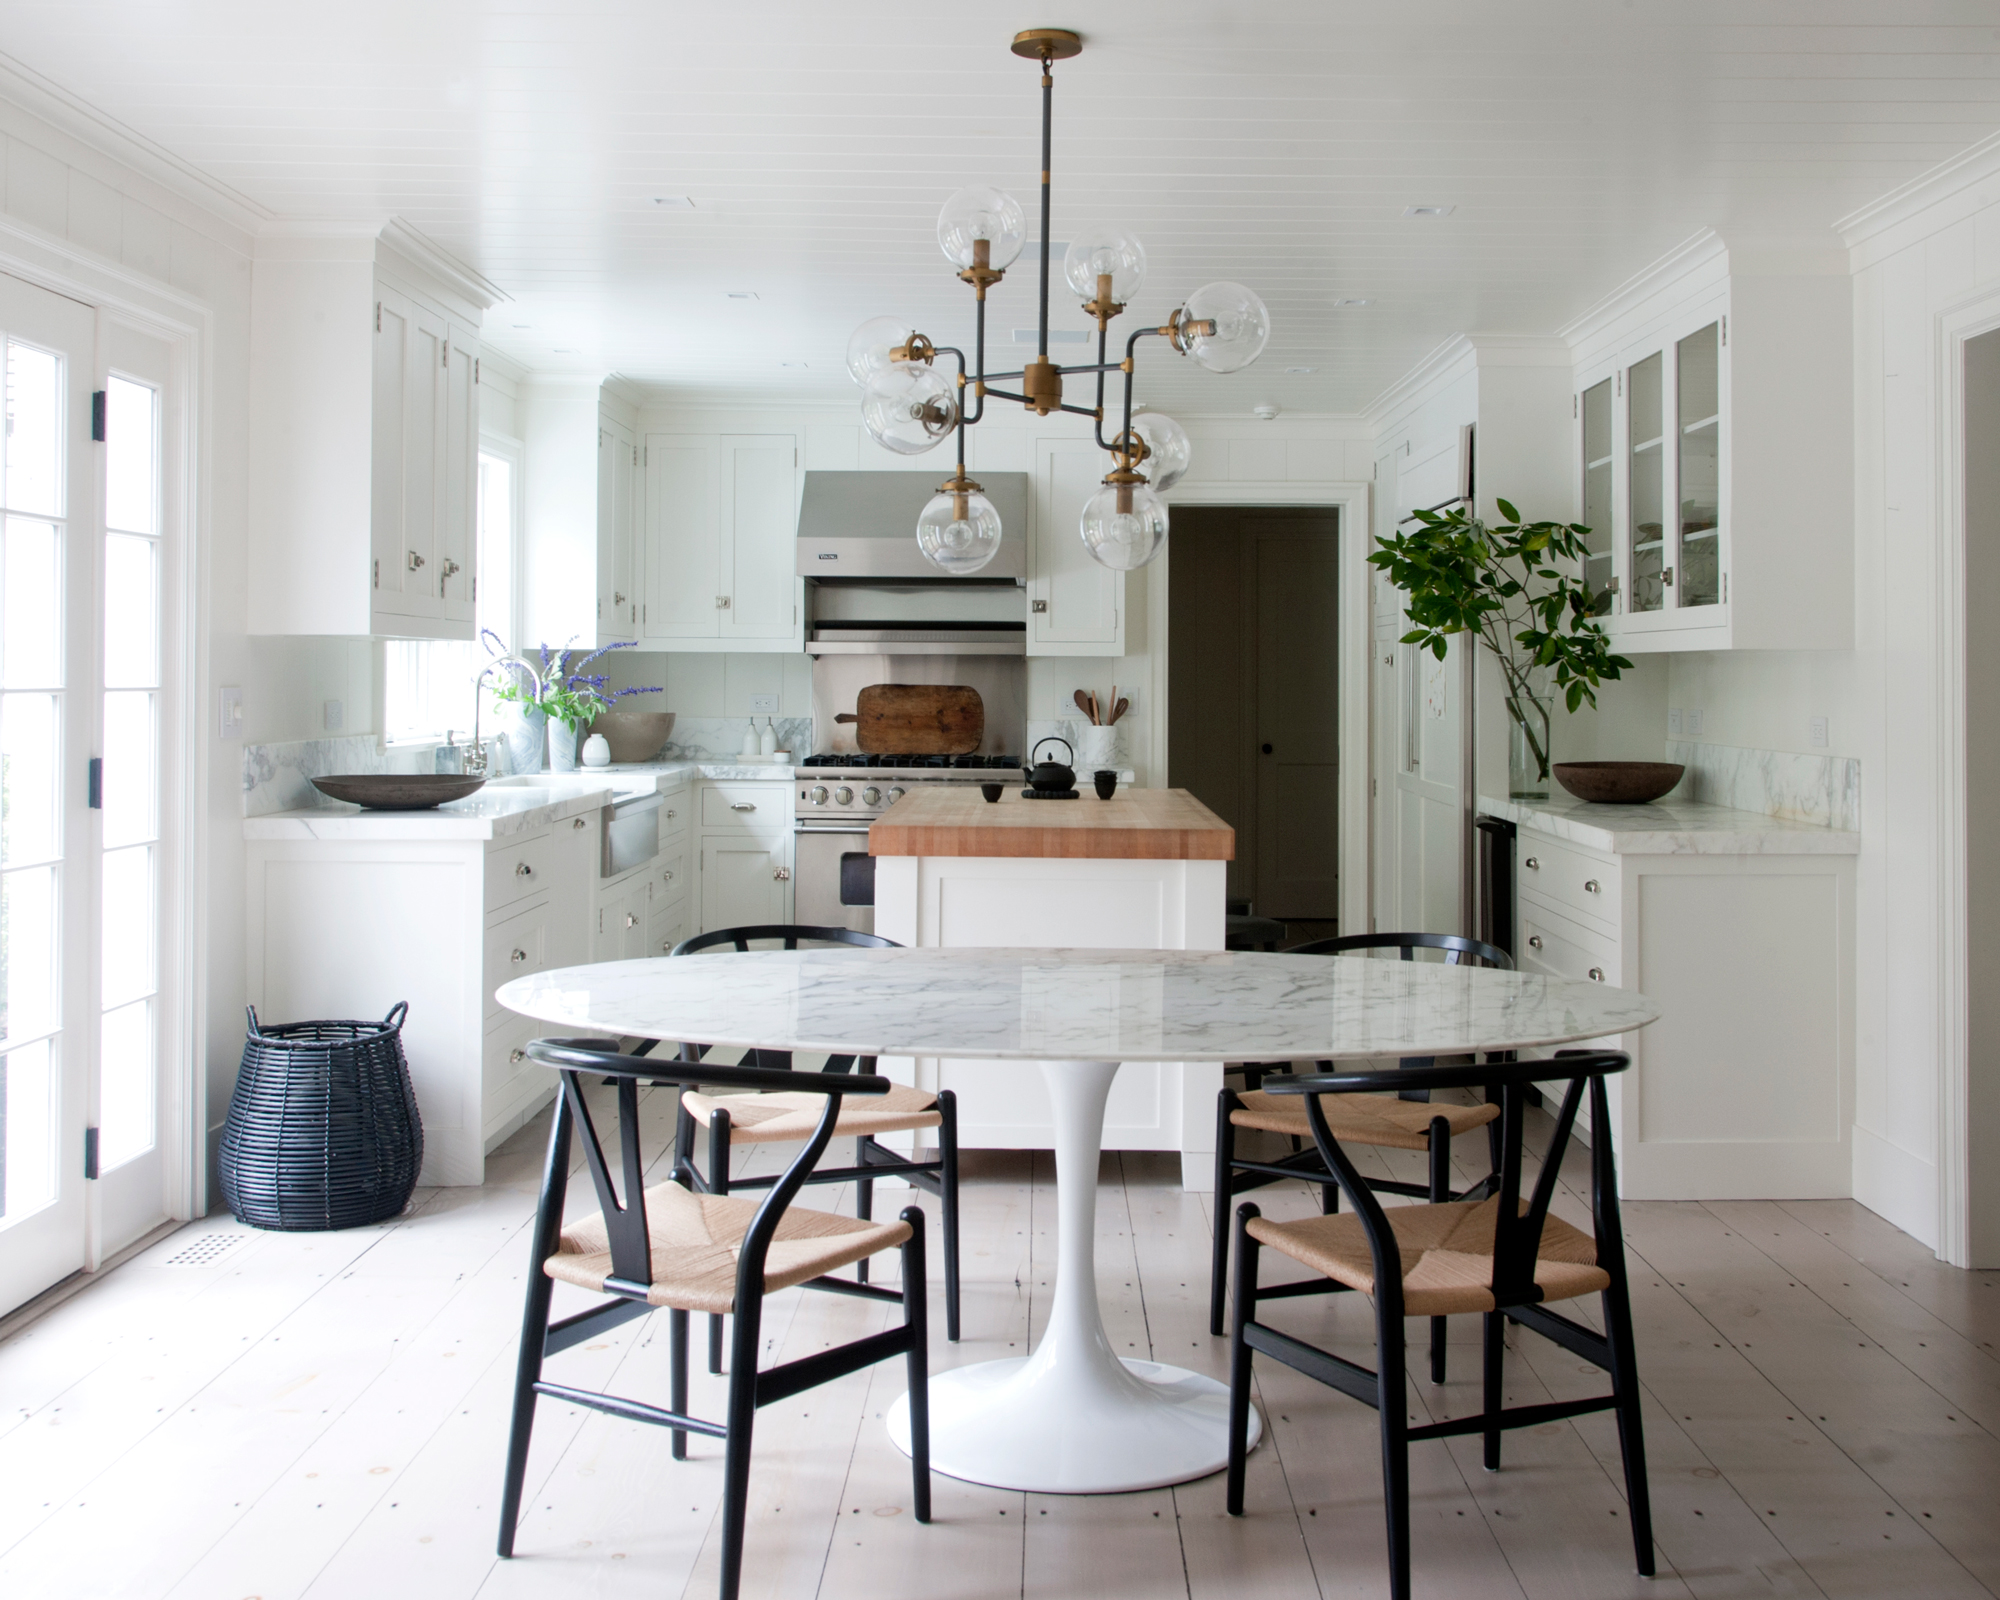 Farrin_Cary_Design_Interior_Hamptons_0231.jpg